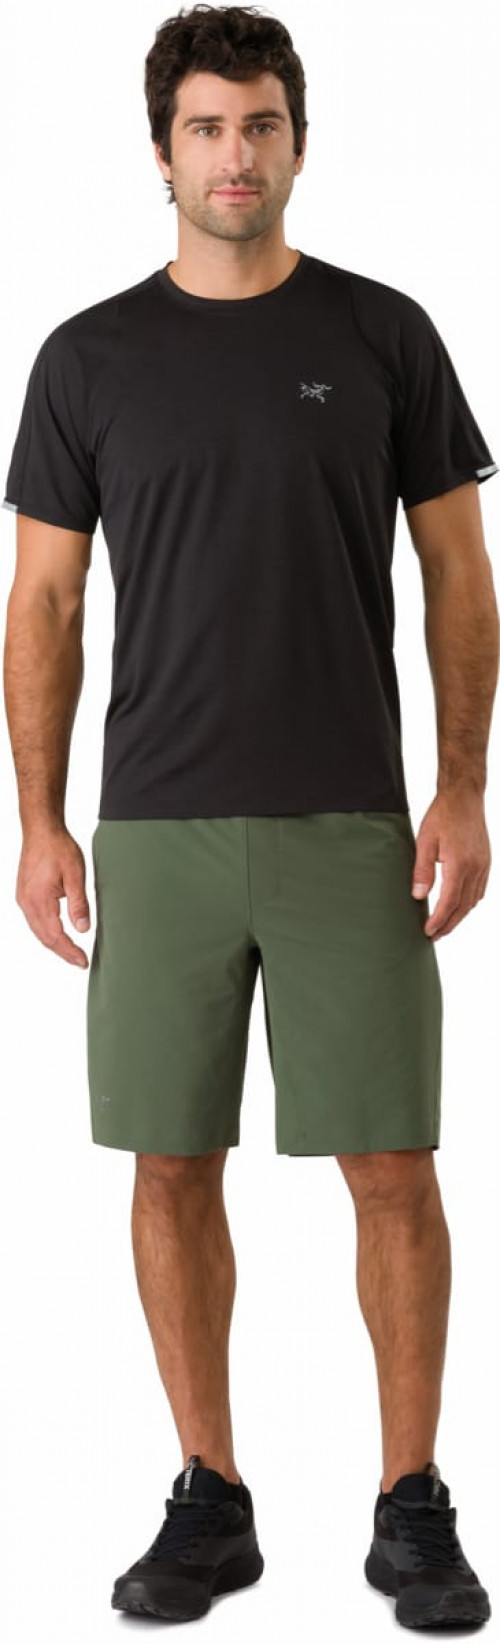 Arc'teryx Aptin Short Men's Black